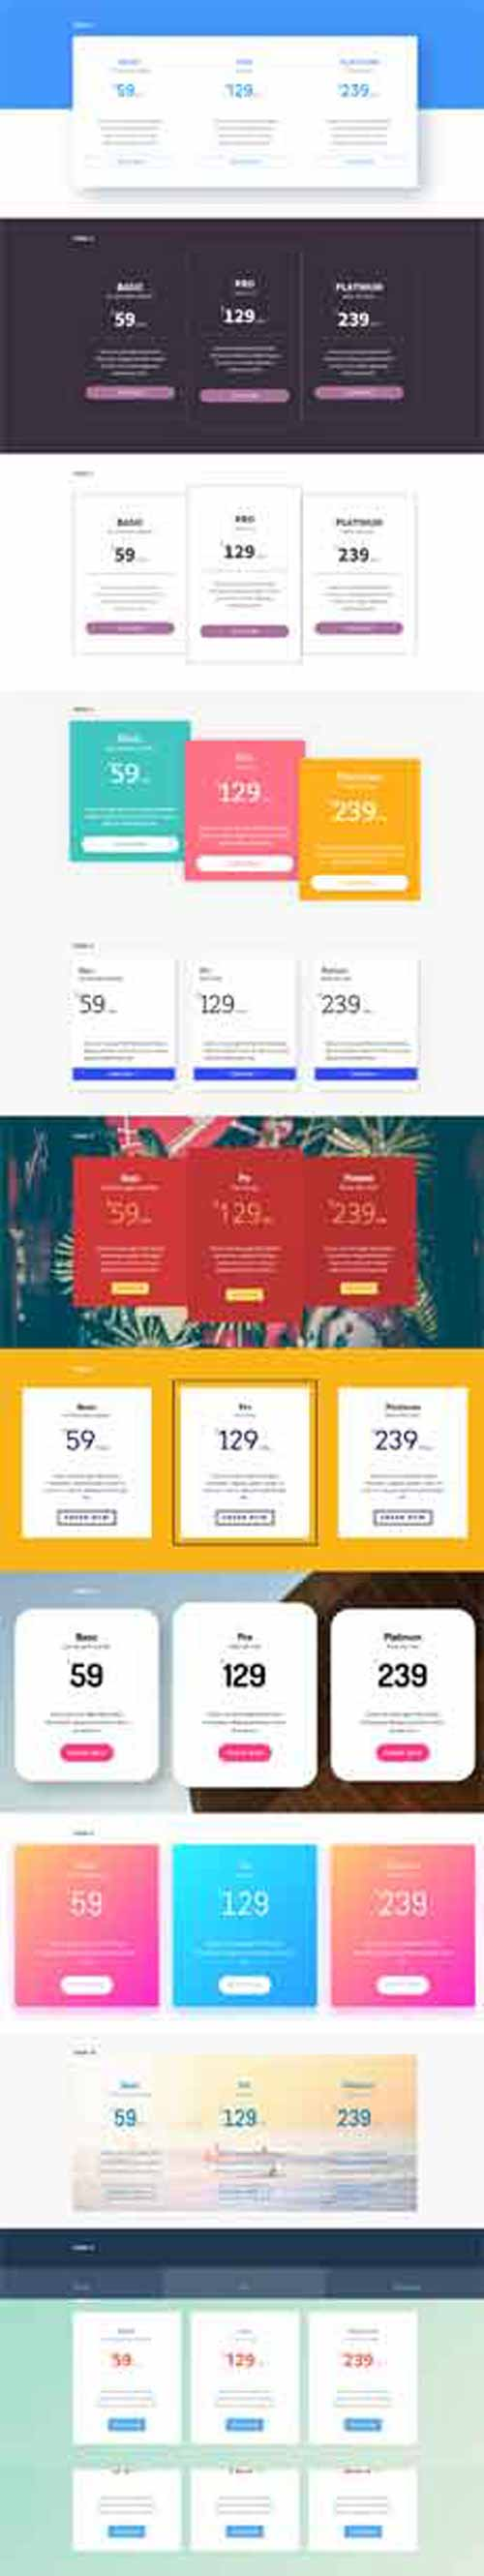 divi pricing table layout pack